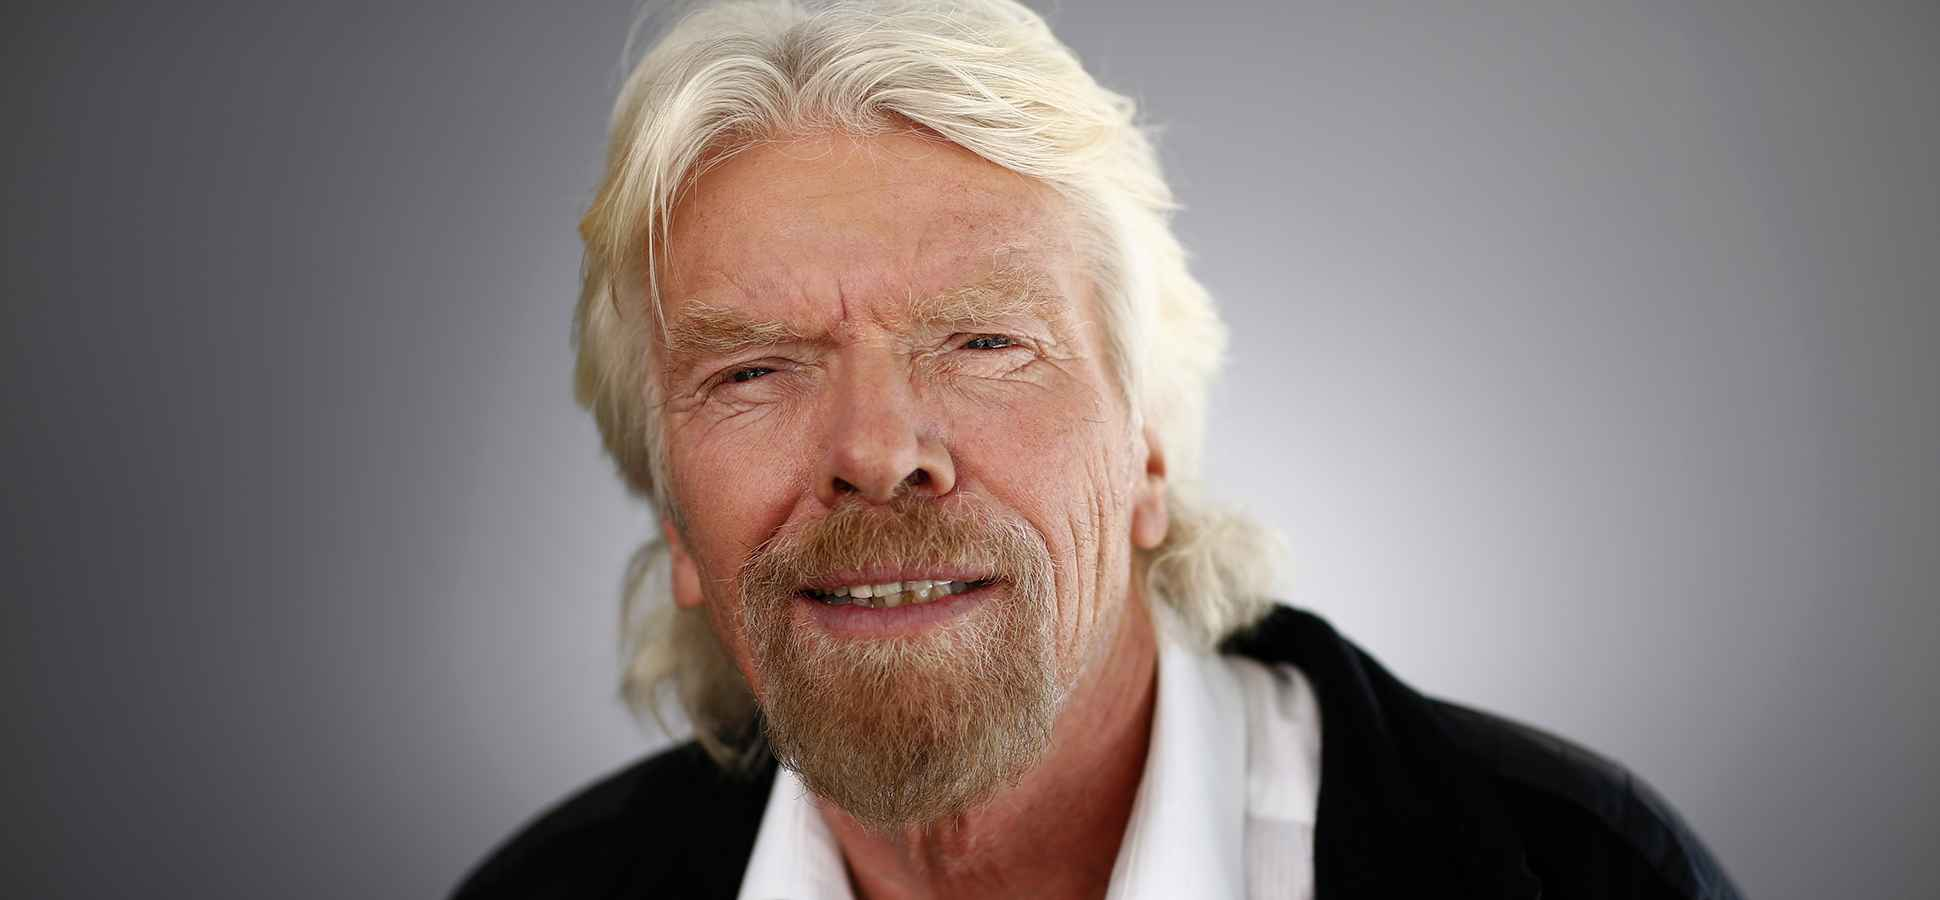 This 1 Word is the Key to Richard Branson's Entrepreneurial Success